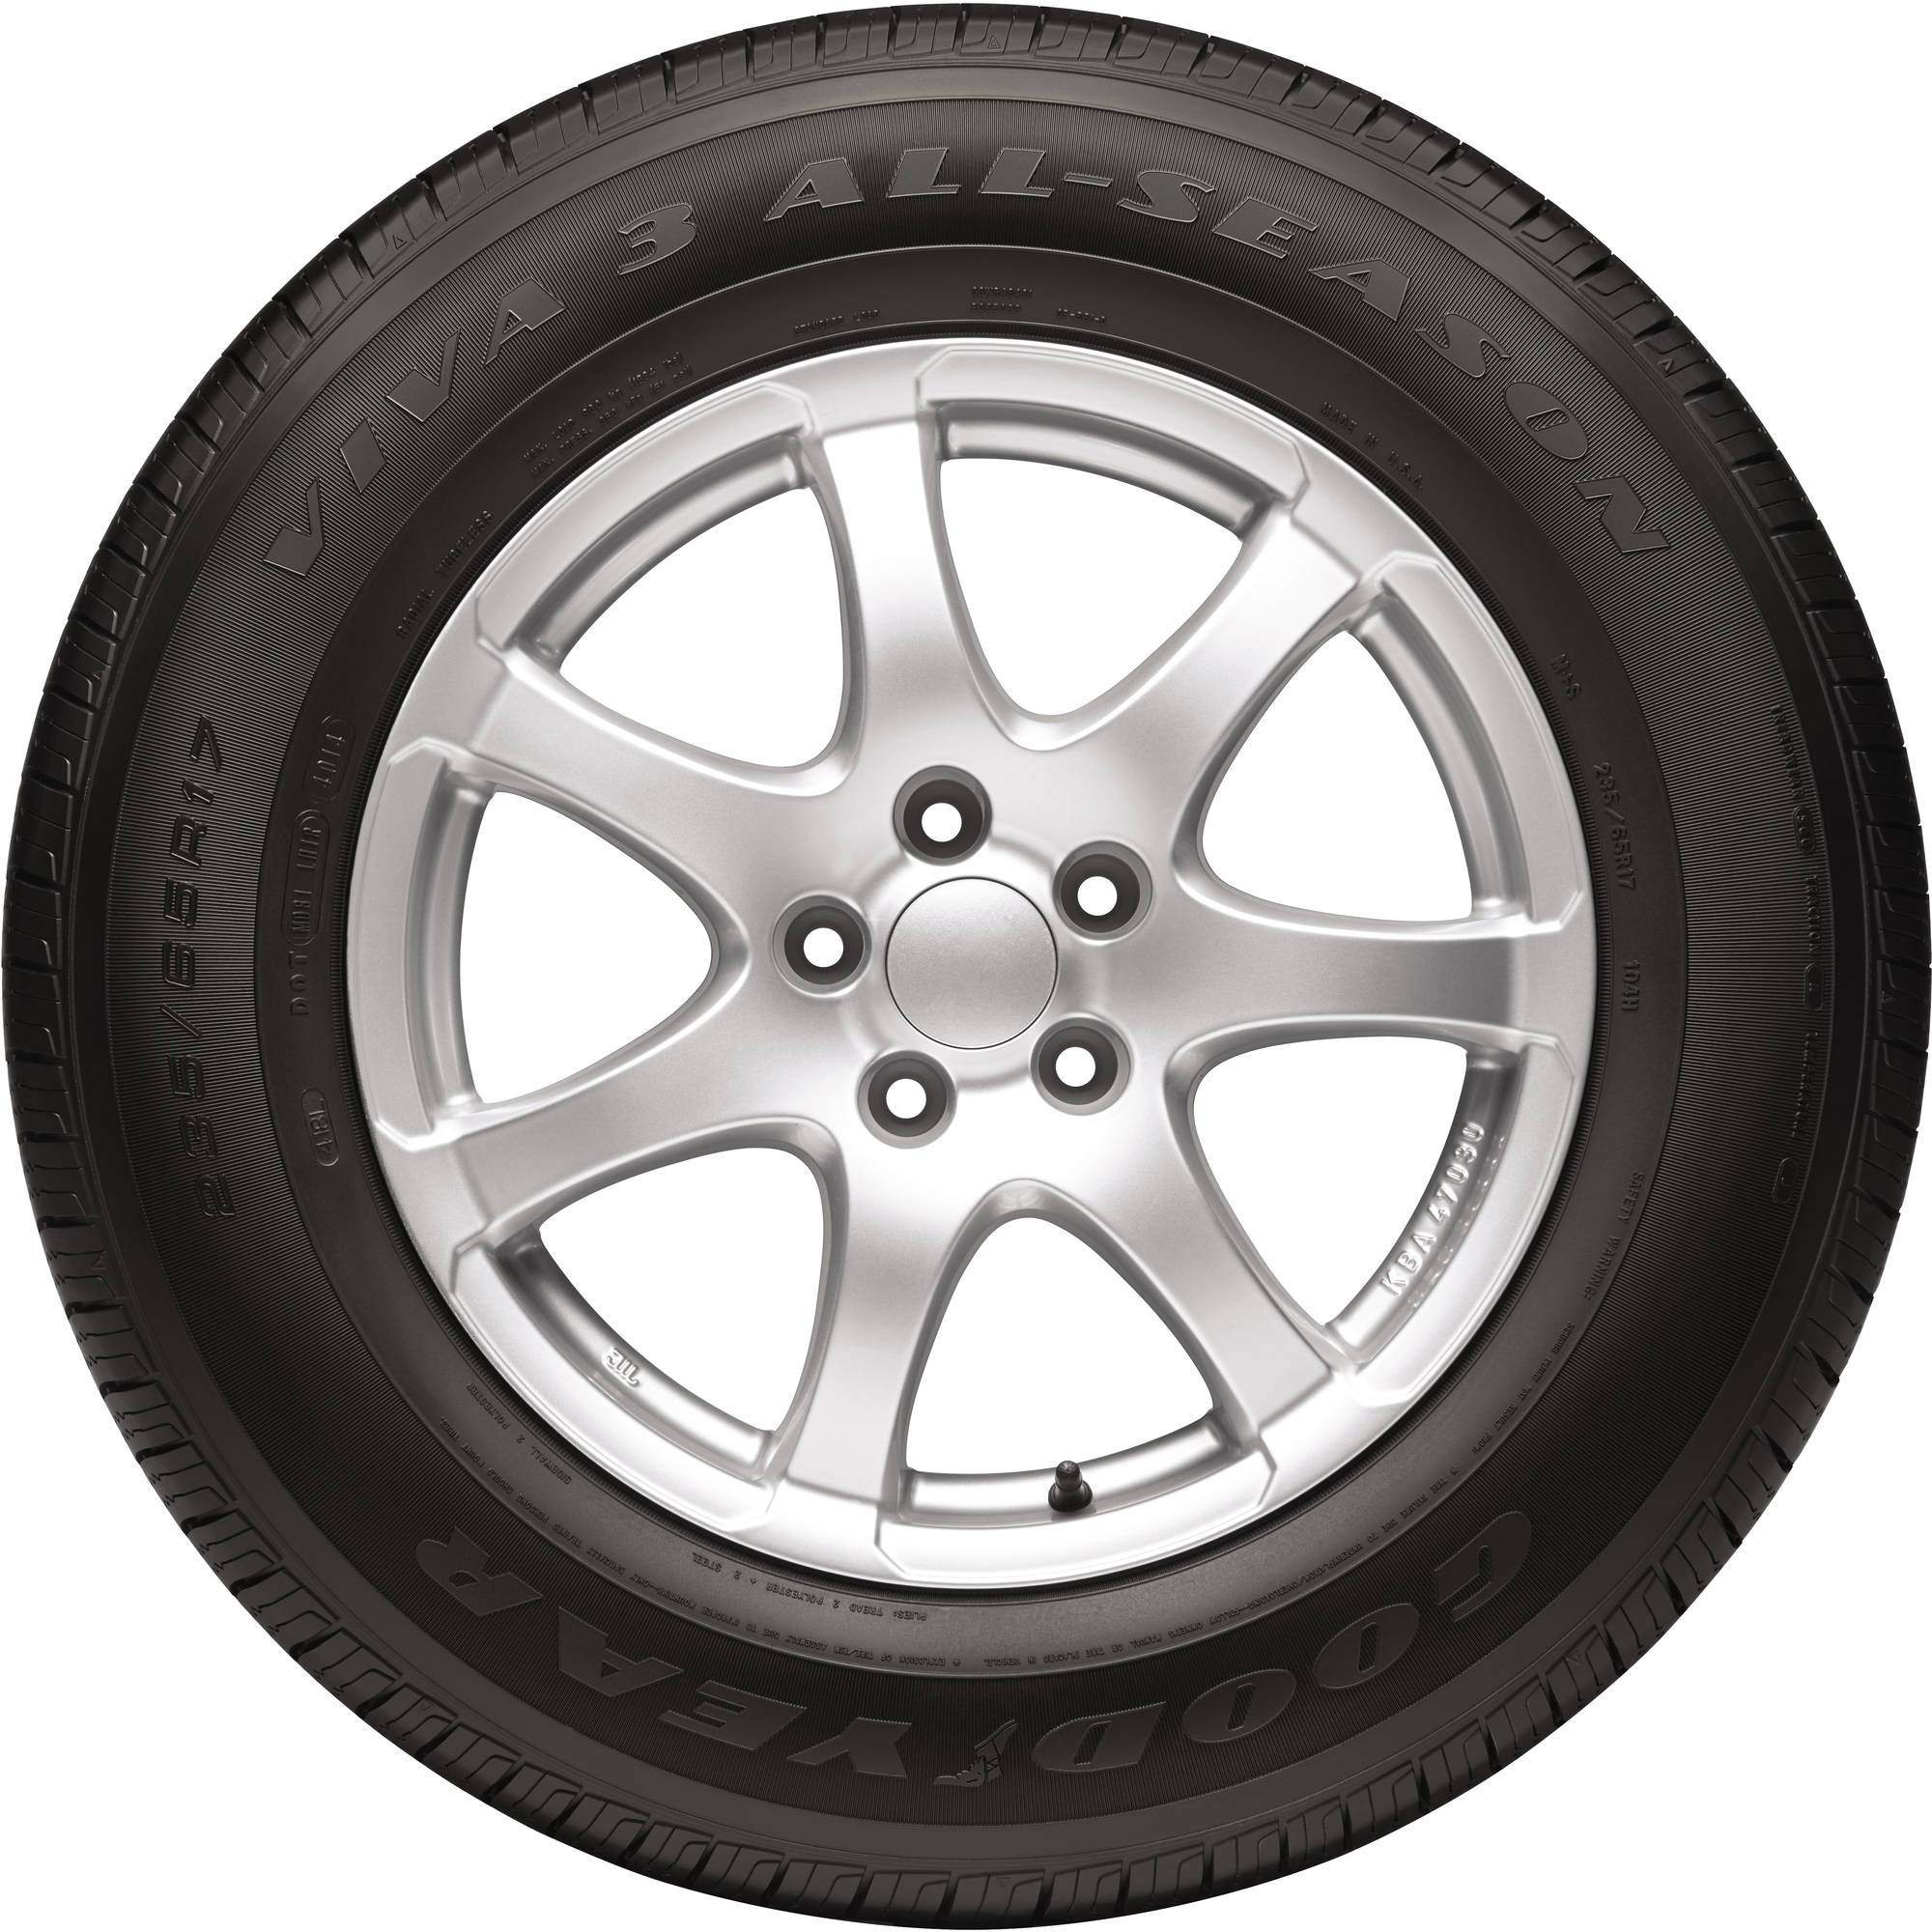 Goodyear Viva 3 All Season Tire 185 65r15 88t Walmart Com